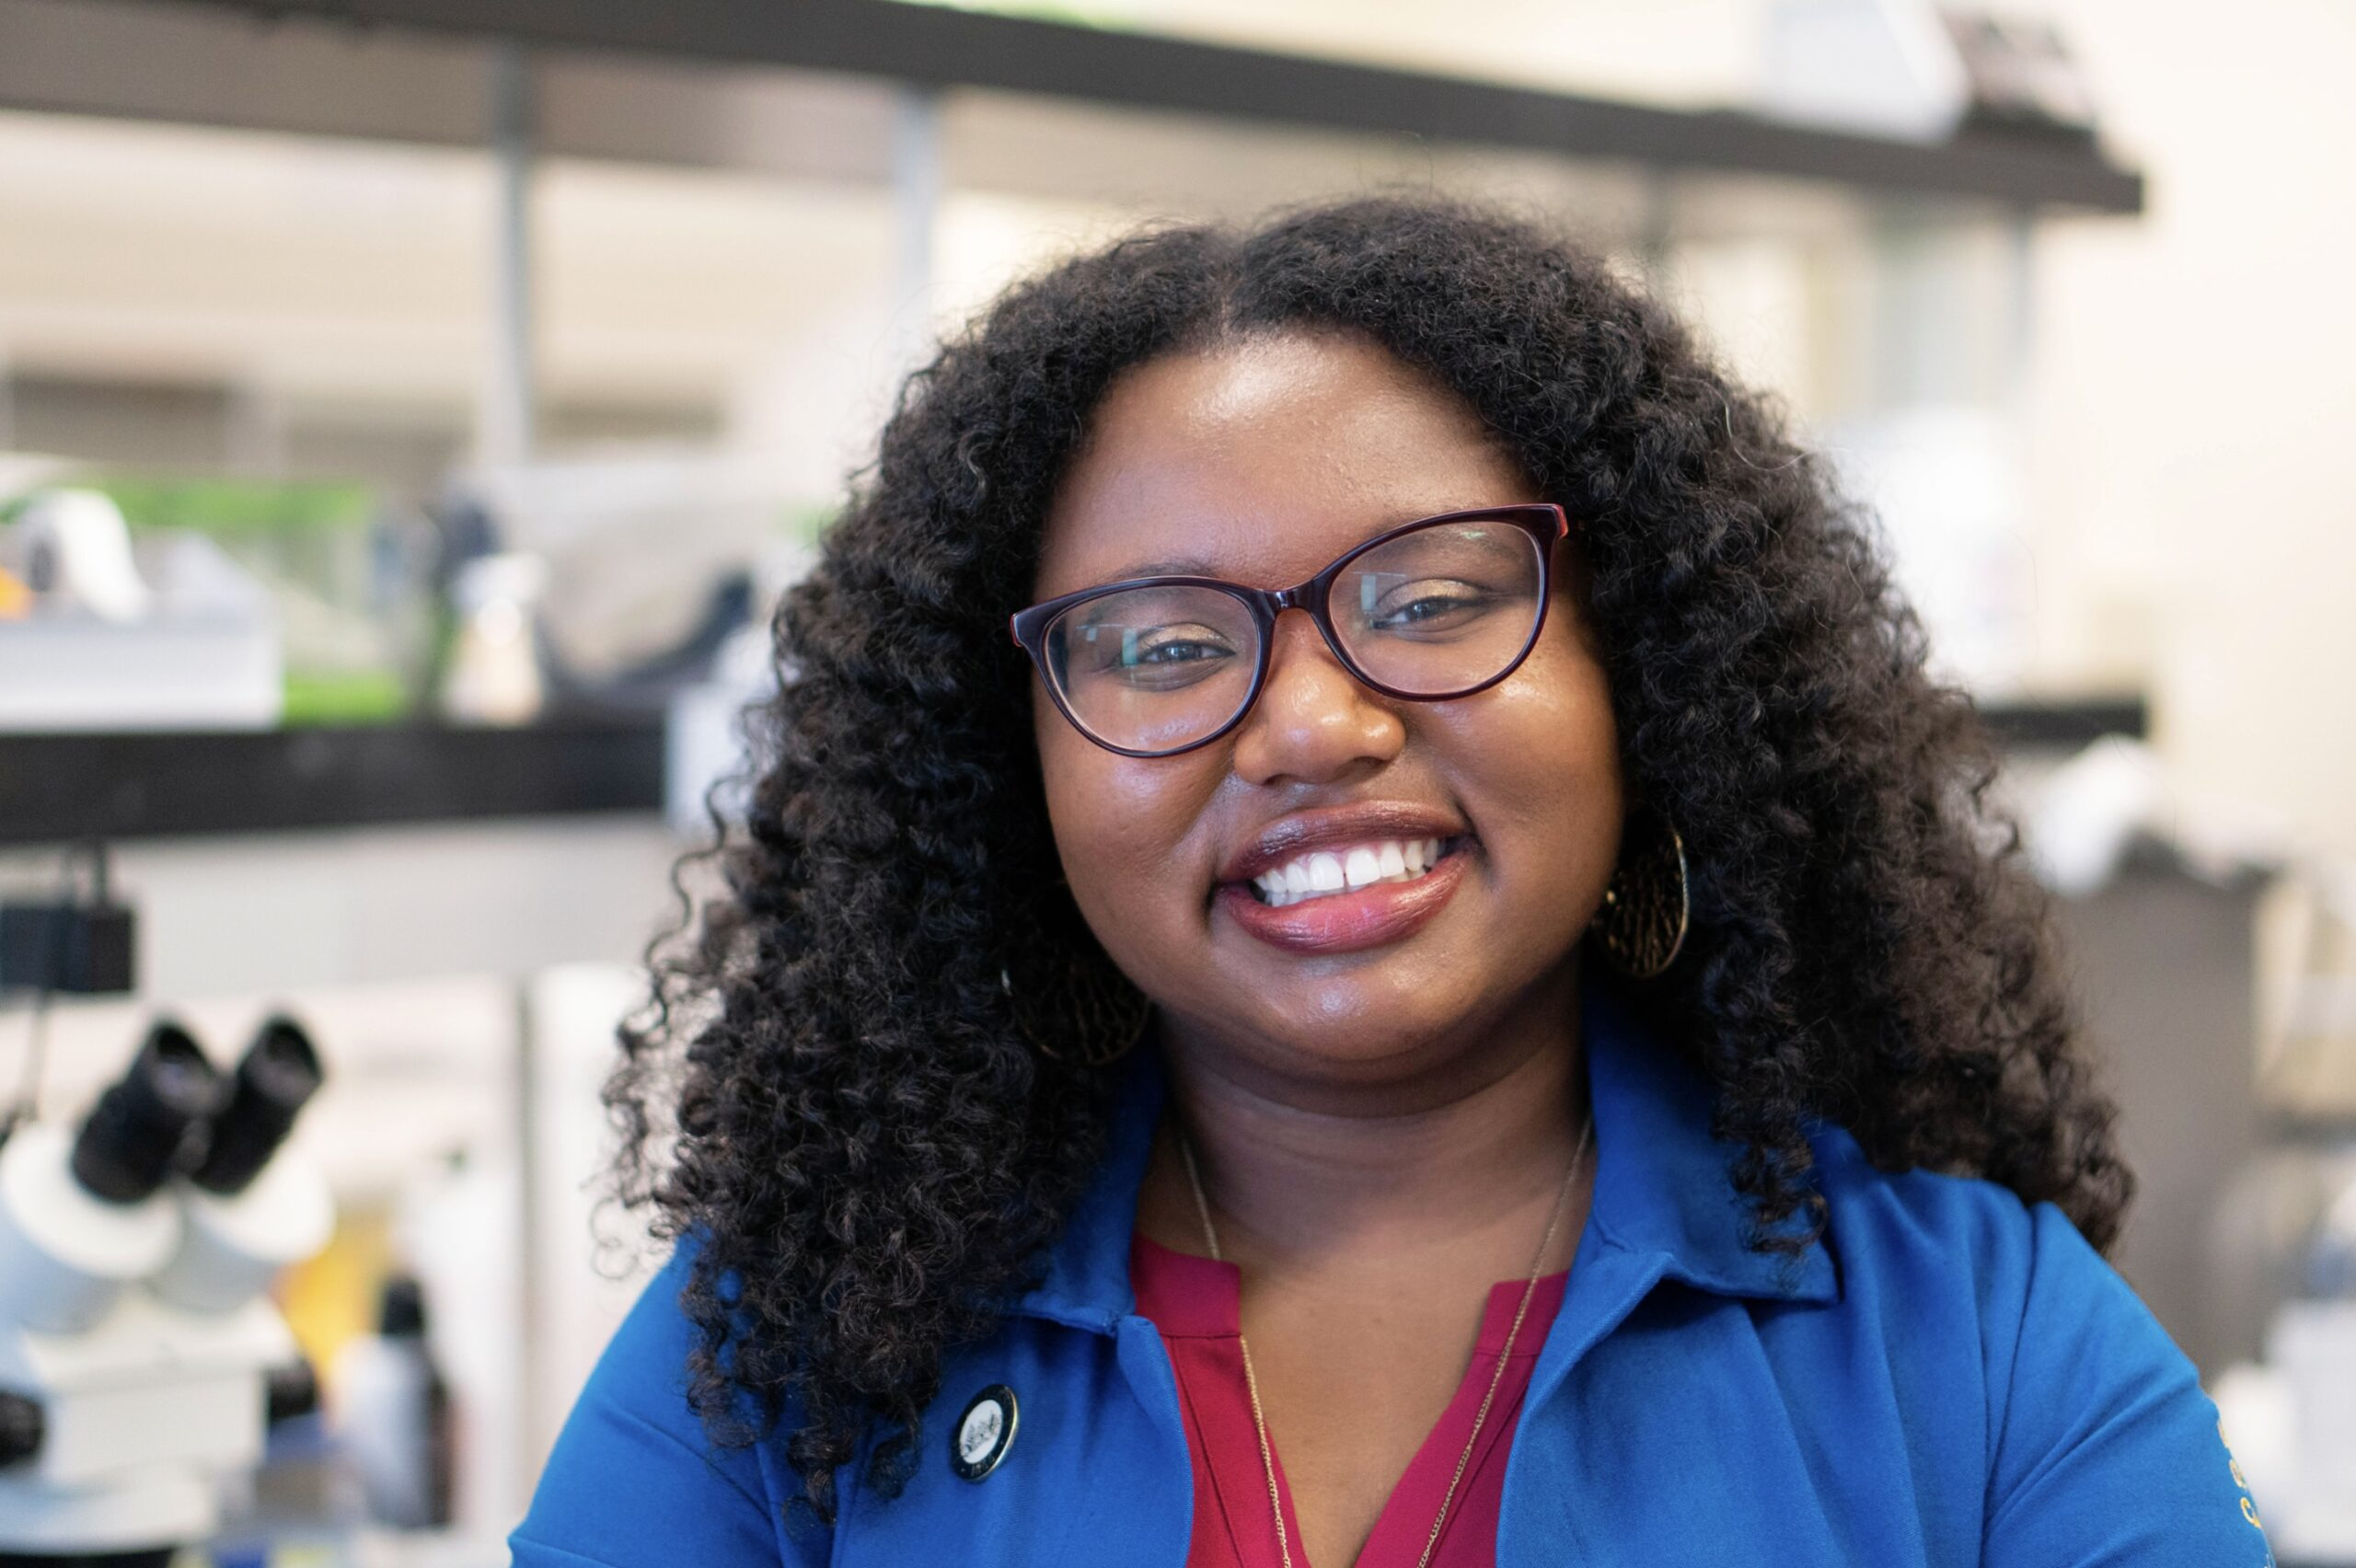 Graduate student Angeline Dukes in the lab.